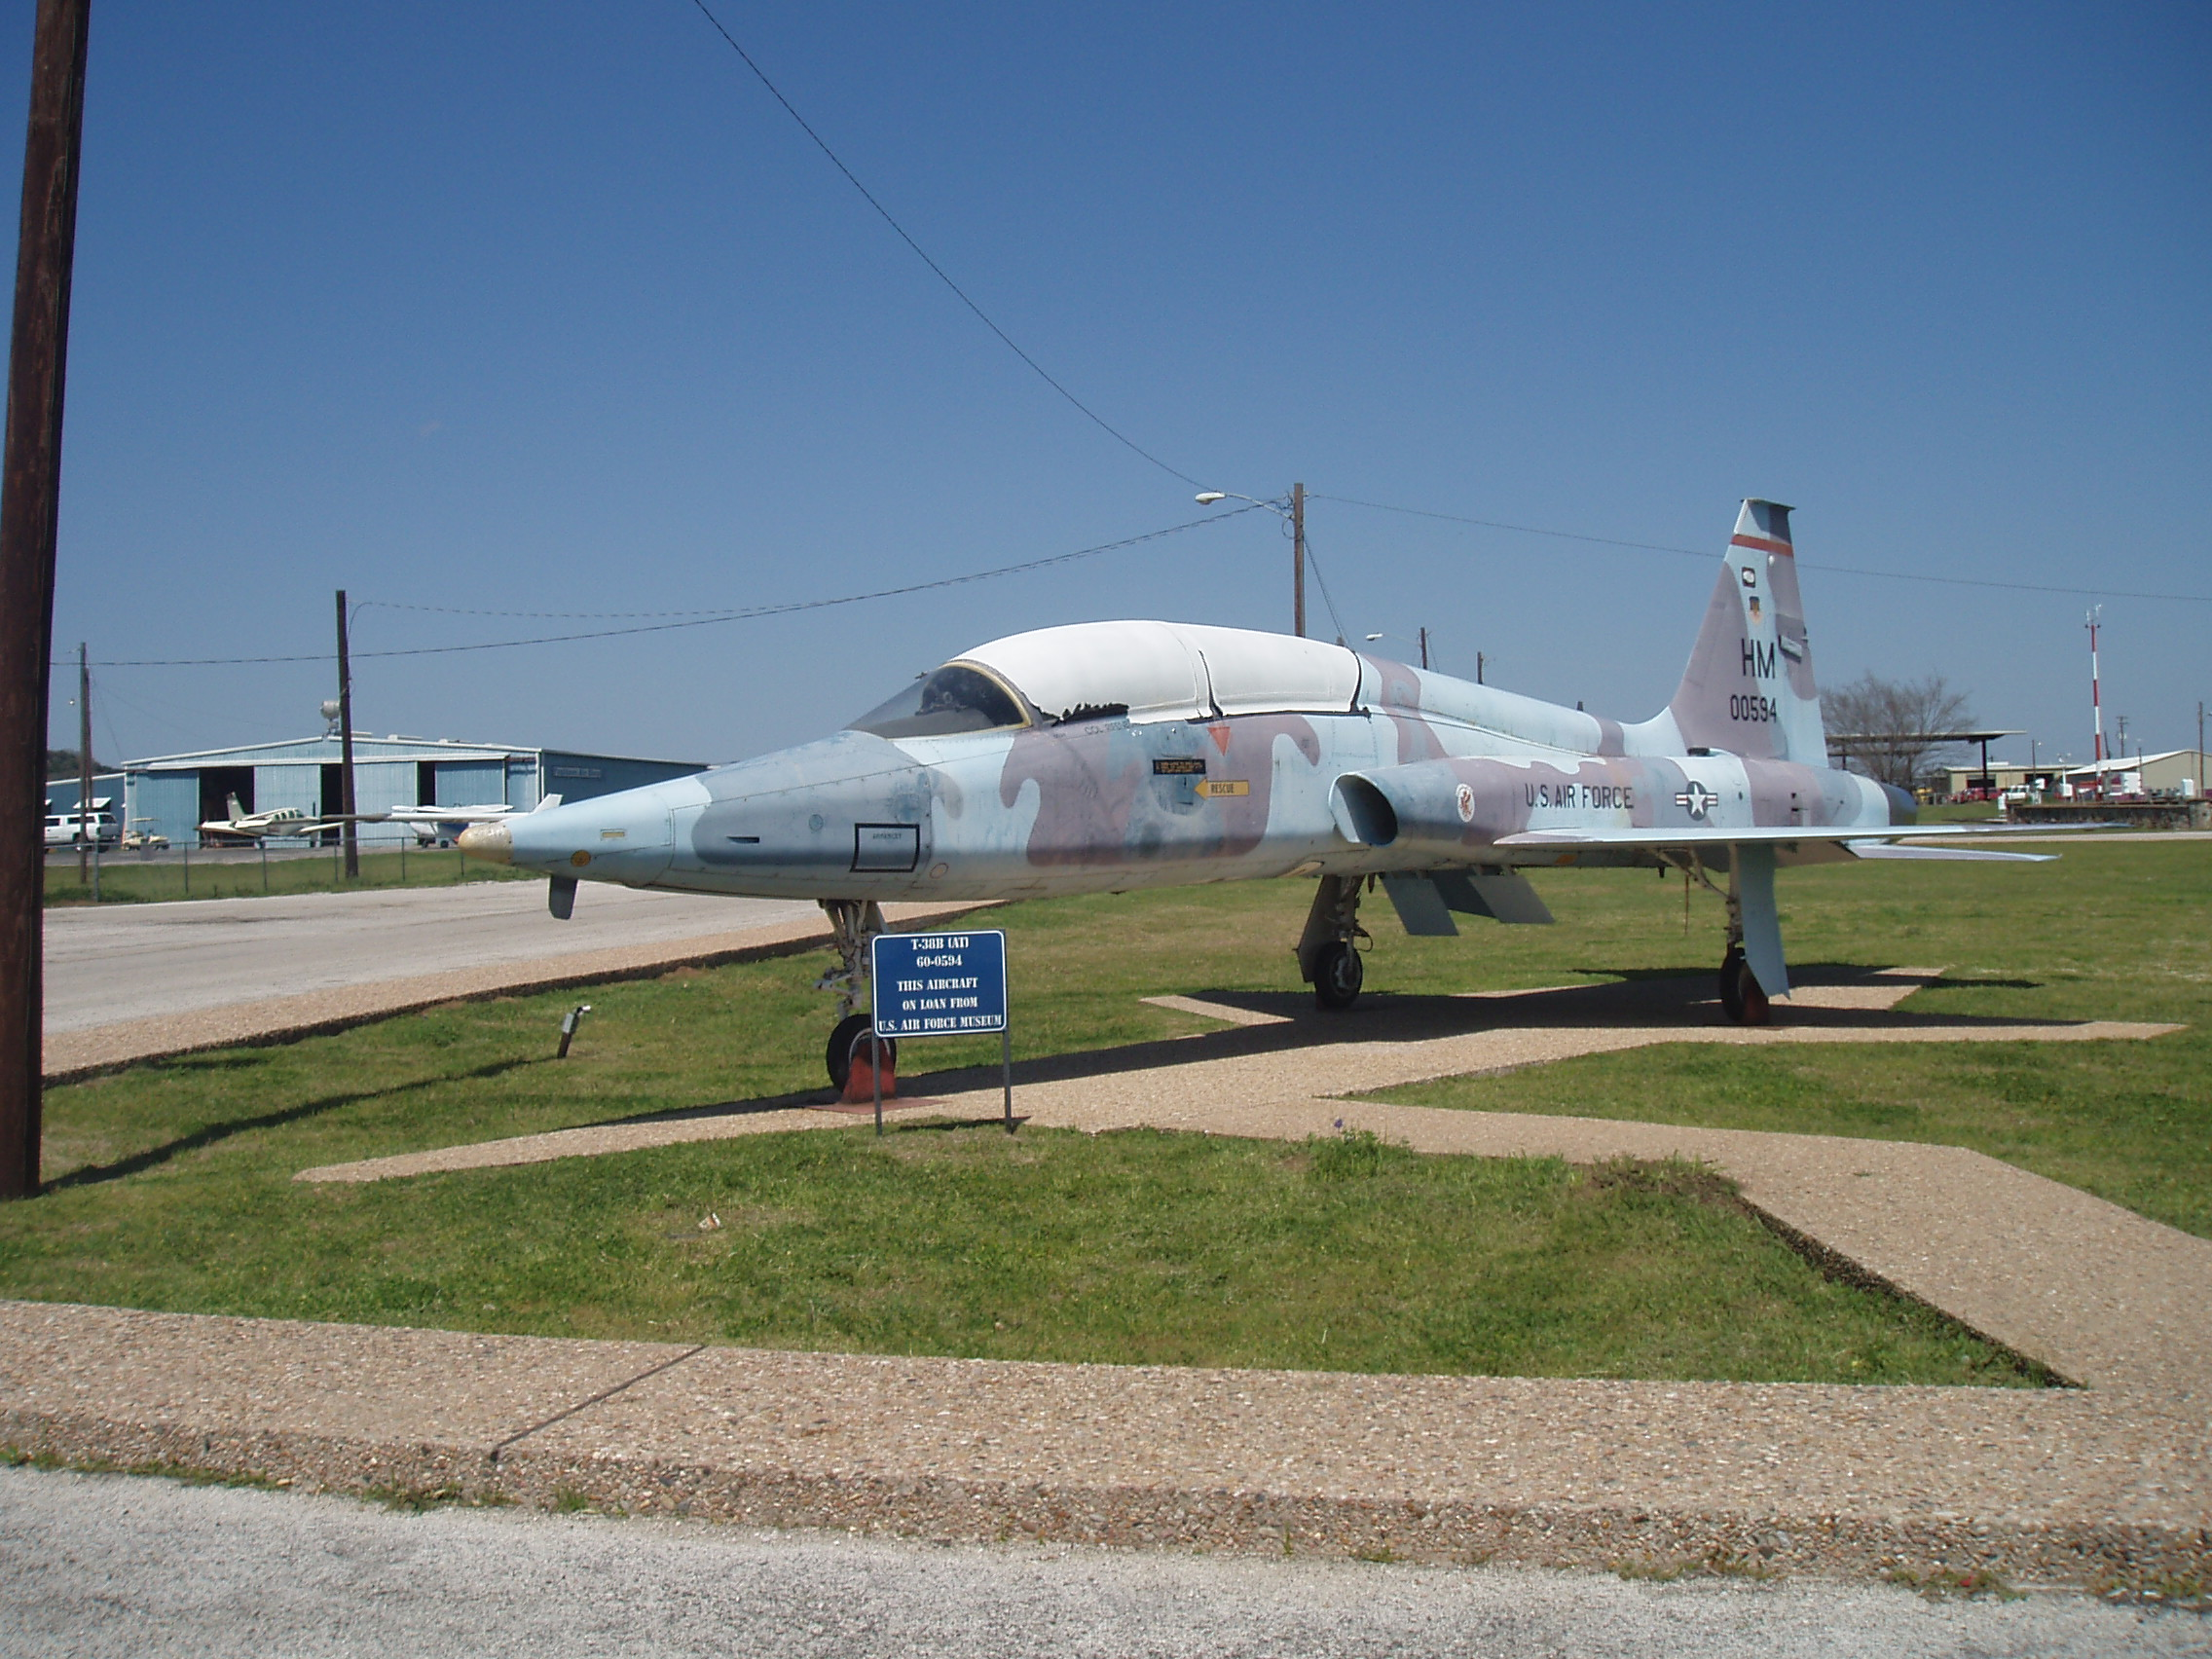 T38B antique aircraft | Pics4Learning